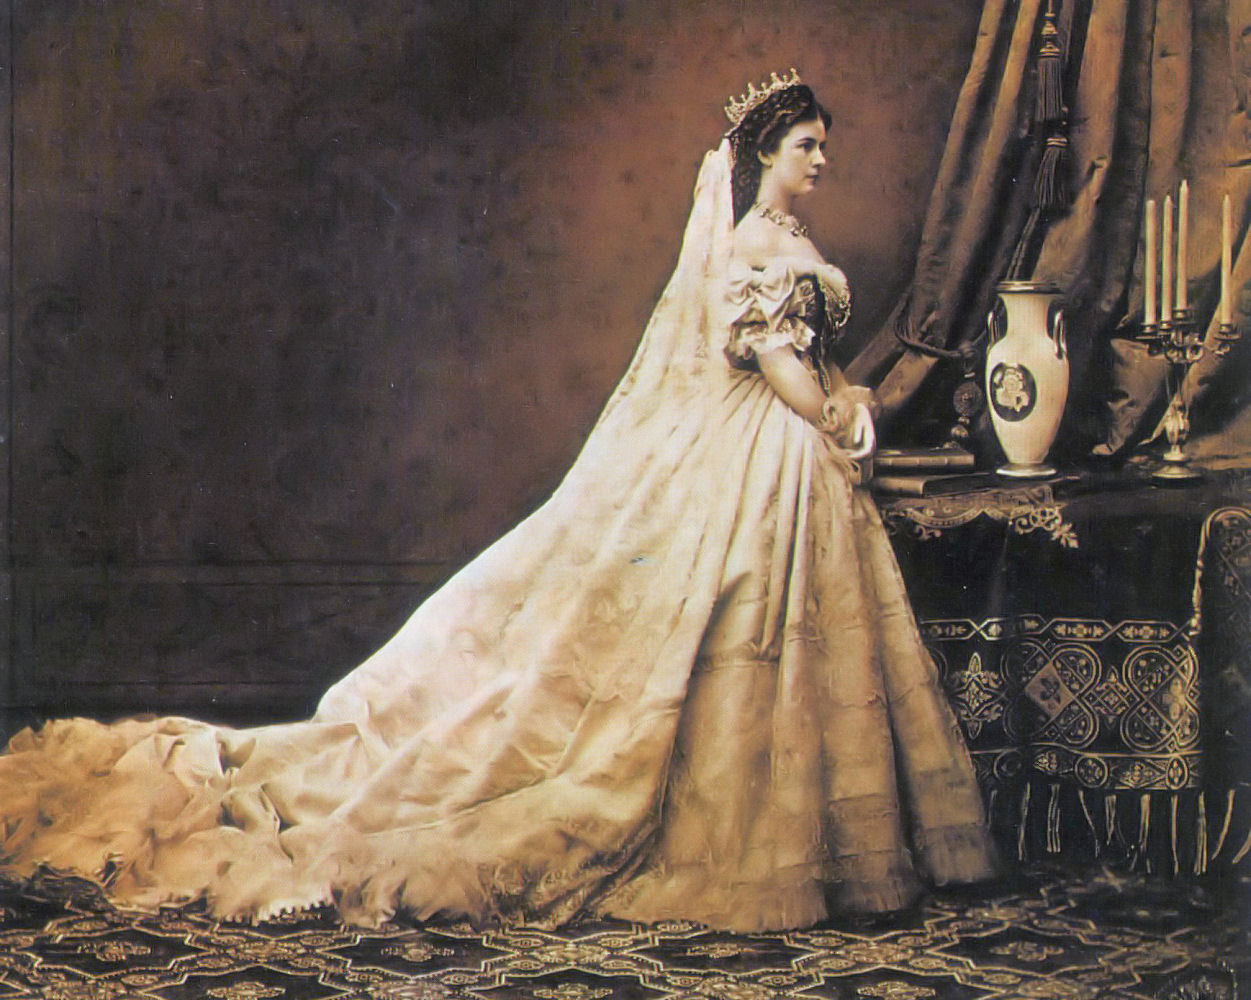 https://mimimatthews.files.wordpress.com/2015/10/empress-elisabeth-of-austria-by-emil-rabending-1866.jpg